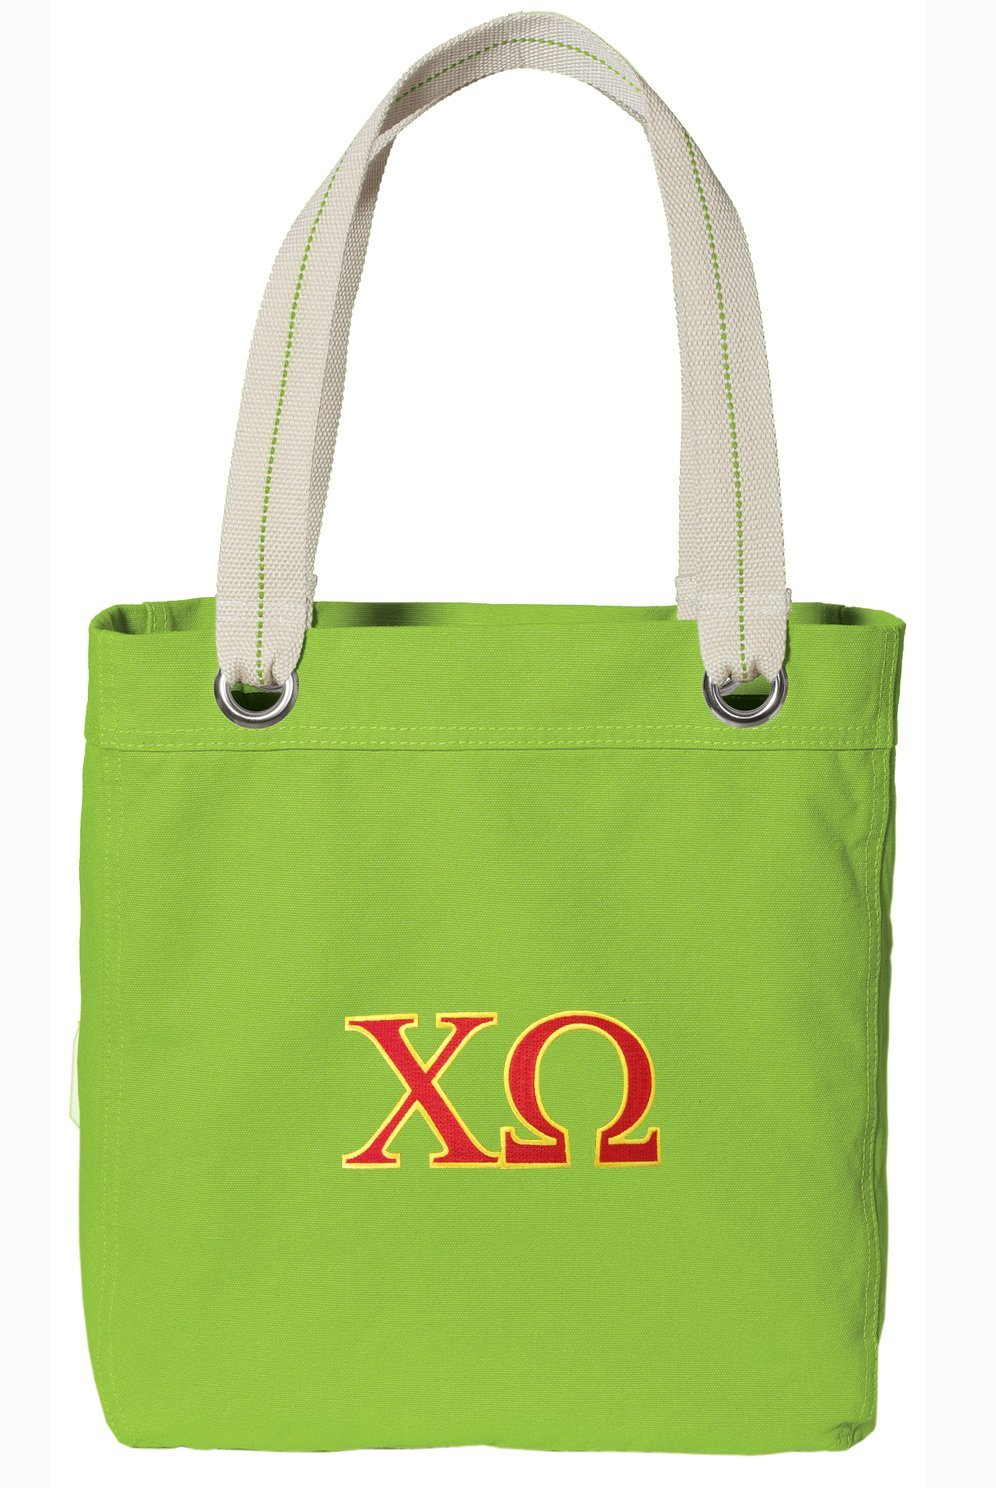 Chi Omega Tote Bag RICH Dye Washed COTTON CANVAS FASHION LIME